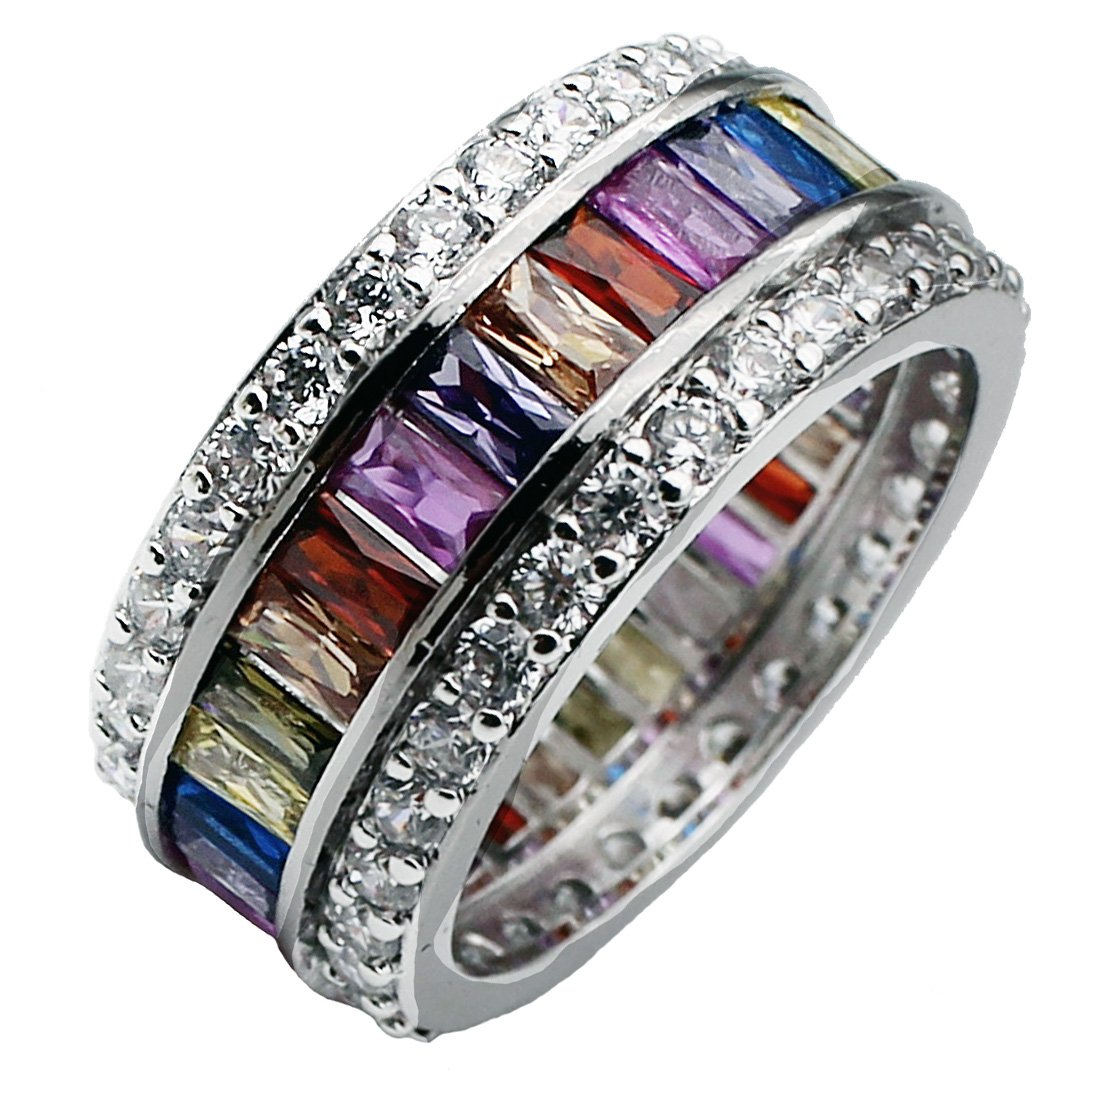 Hermosa Unique Wedding Valentine's Day Rings Inlay Morganite Topaz Garnet Amethyst Ruby Aquamarine Silver Ring Tongshu AR07